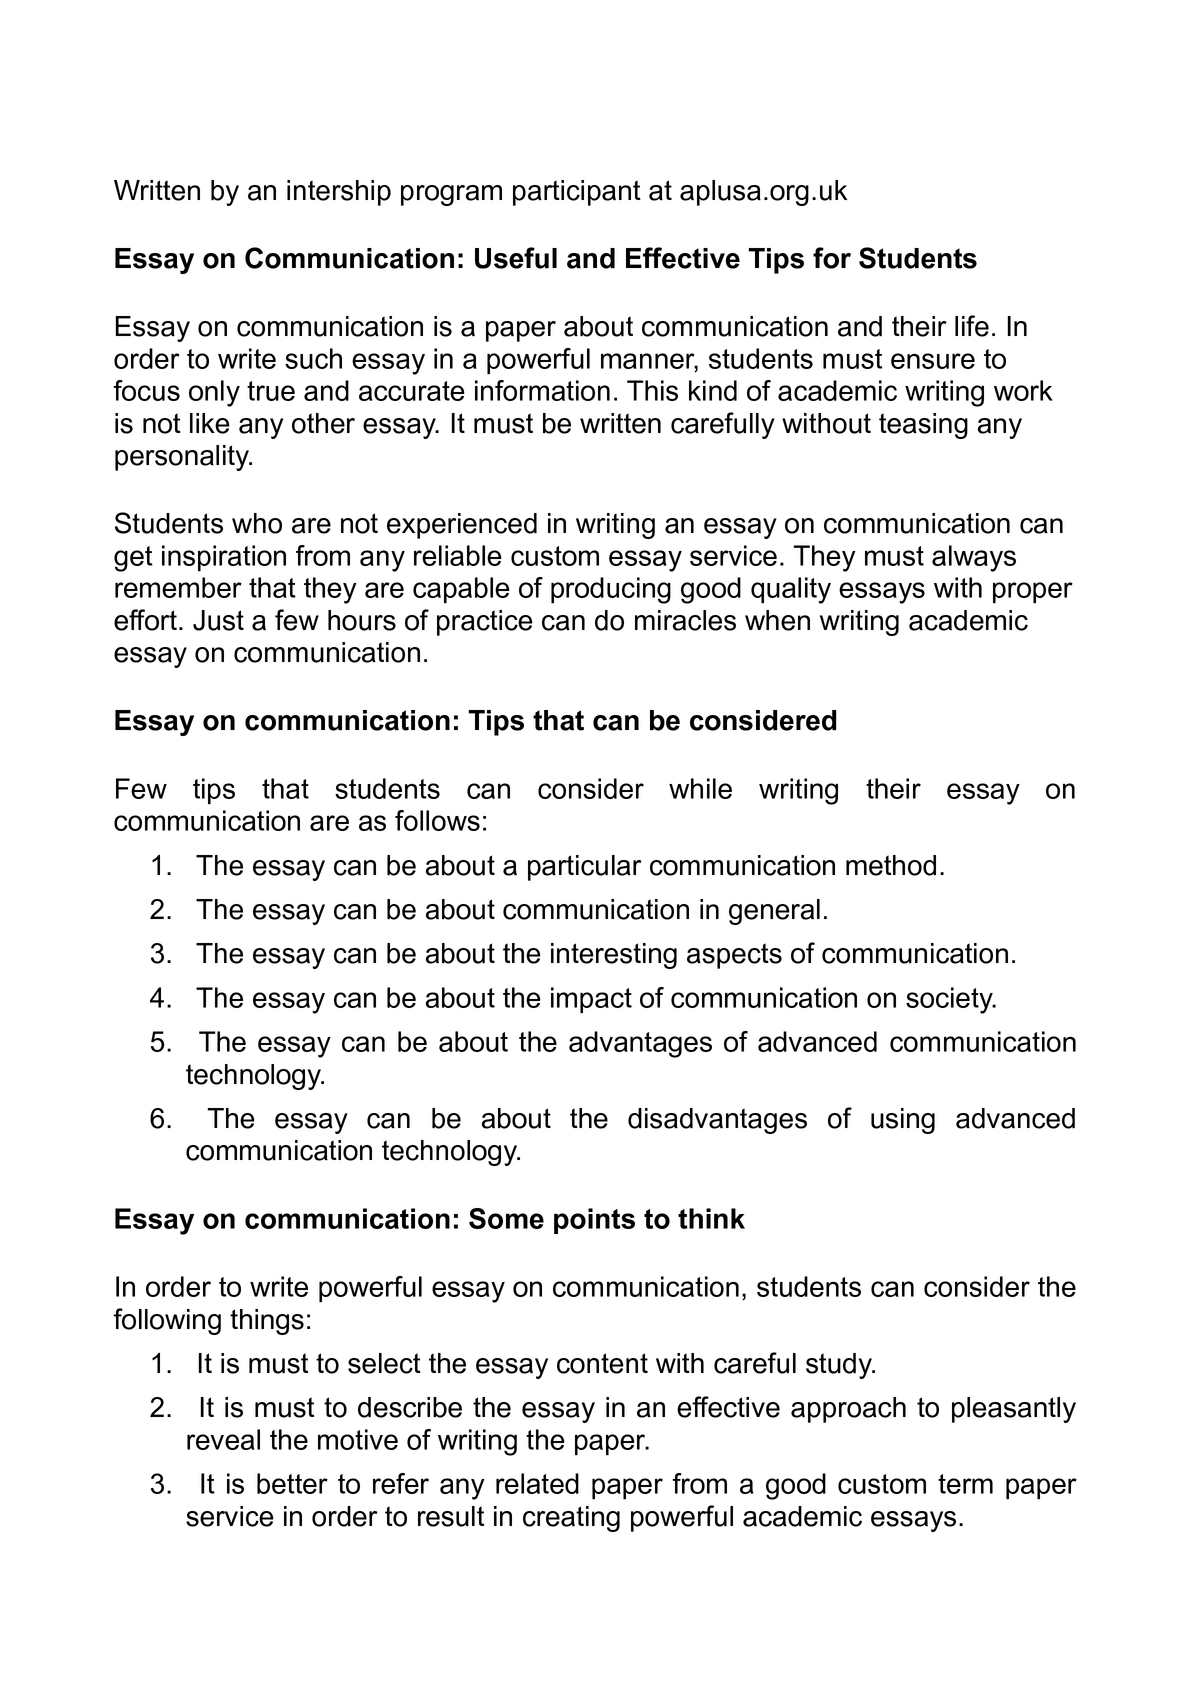 How to write a communications essay